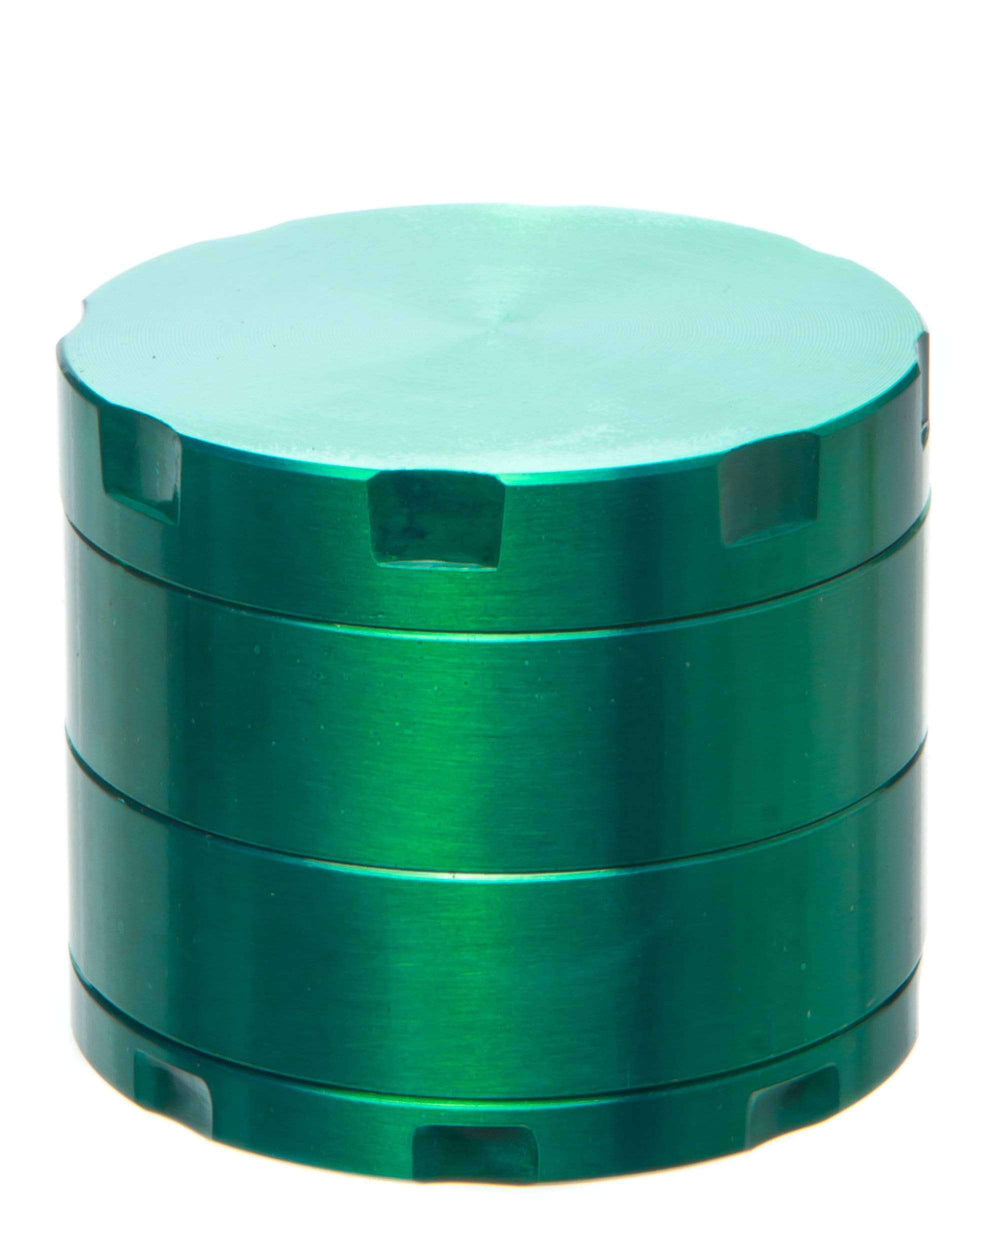 Four Piece Herb Grinder - Destination Smoke